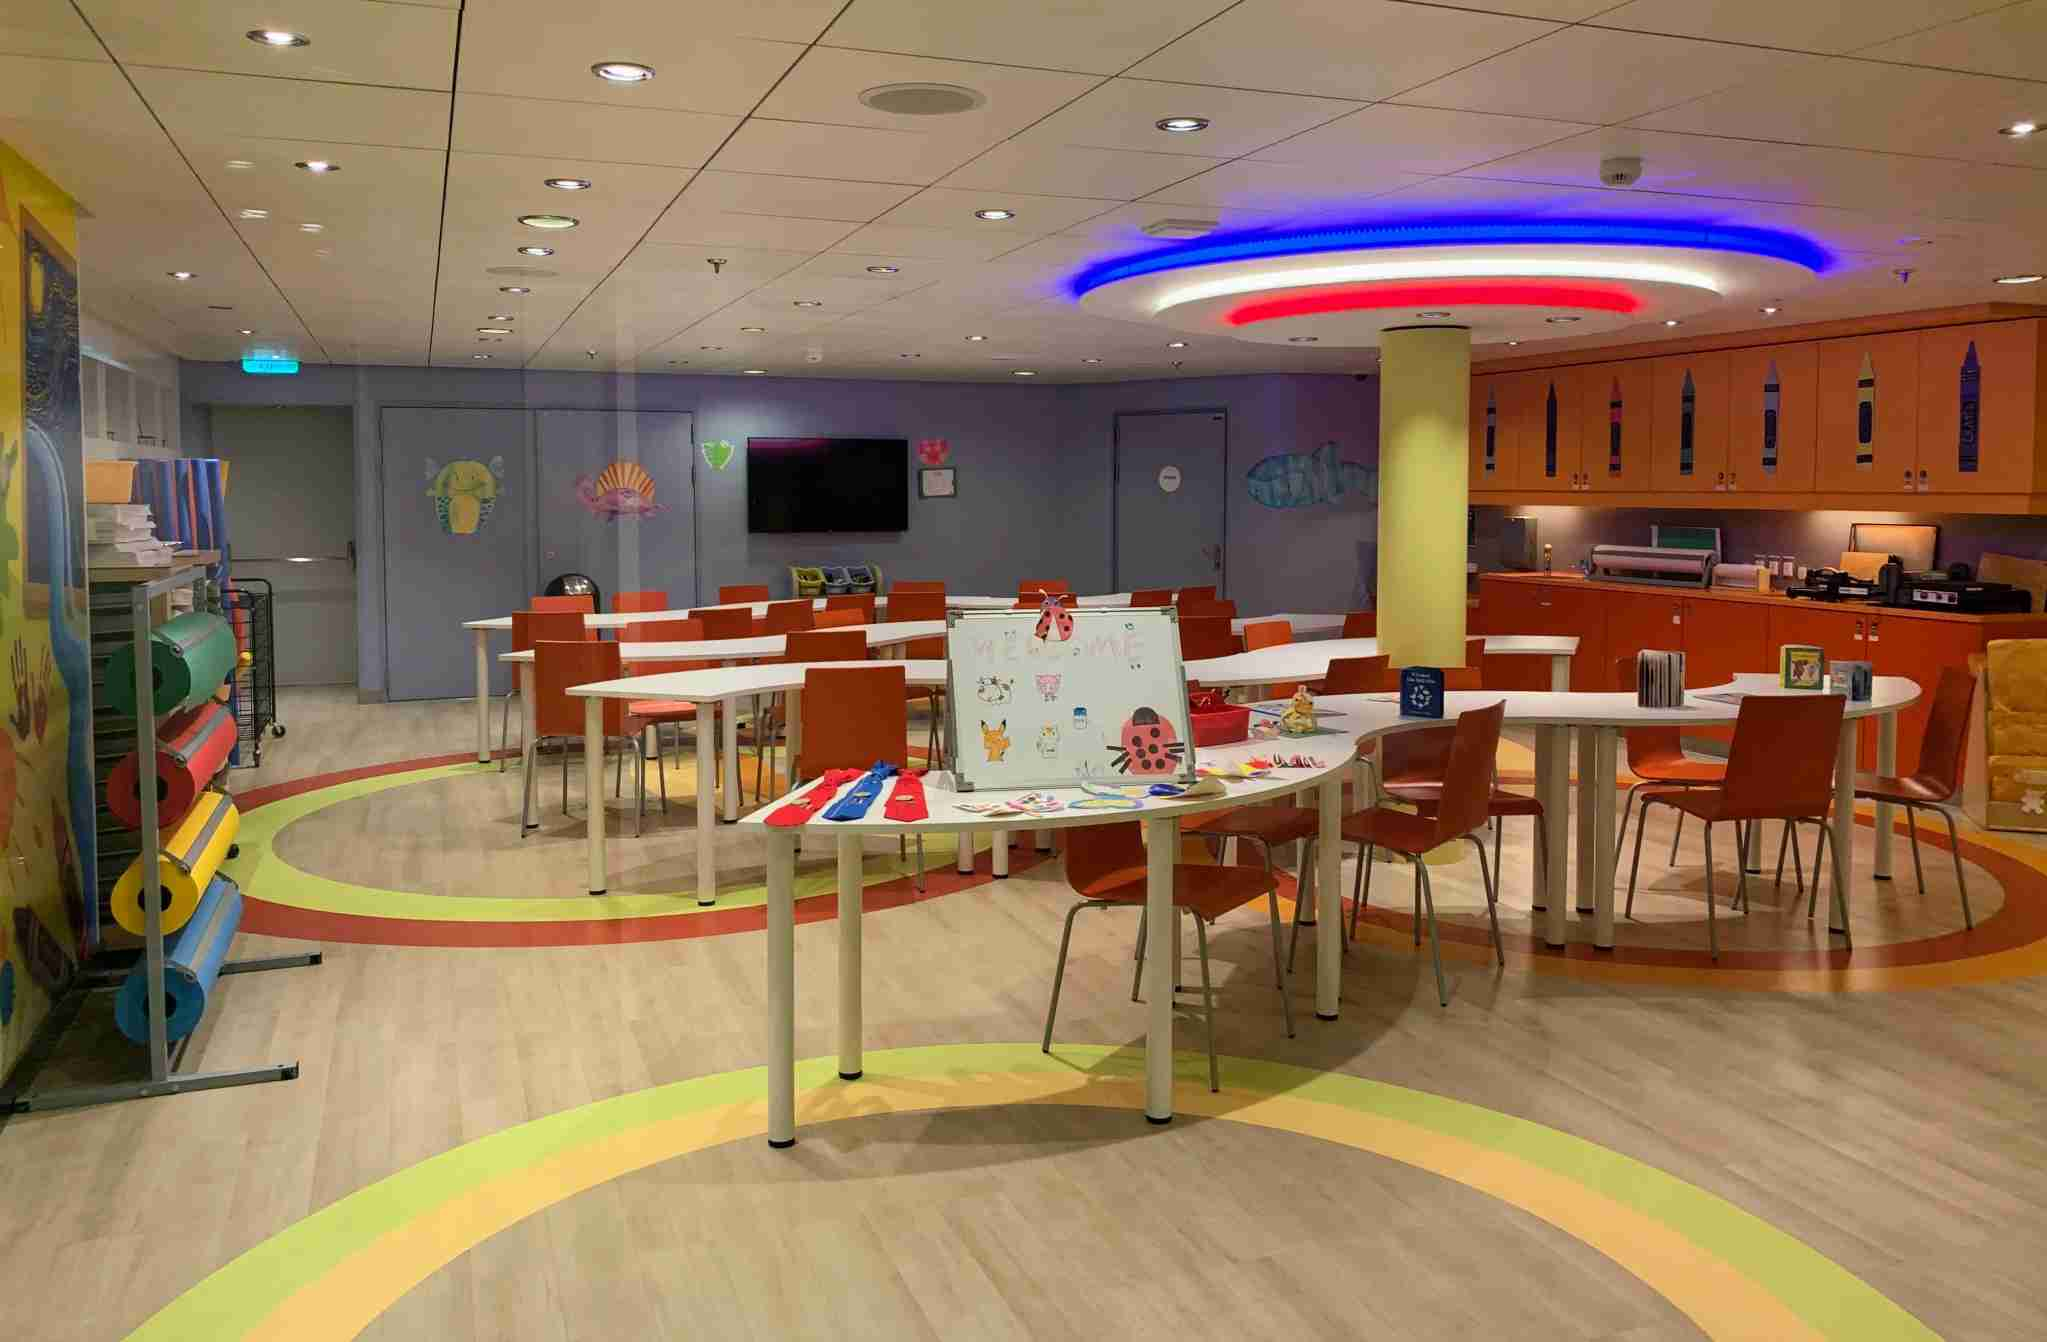 Royal Caribbean Symphony of the Seas - Learning Center for Kids